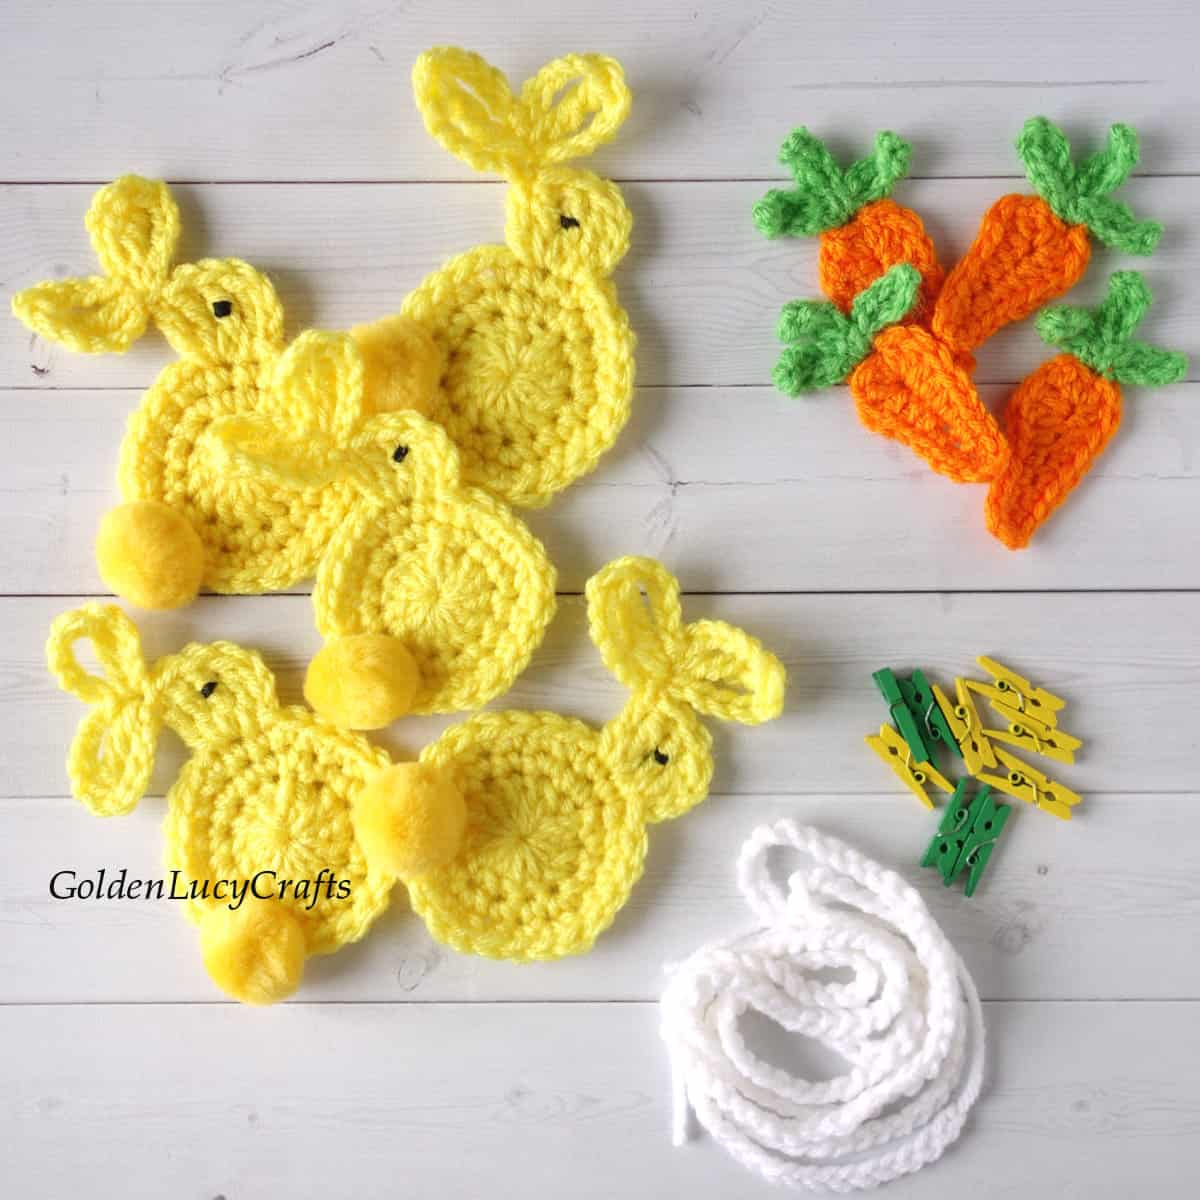 Pieces to make crocheted Easter garland.